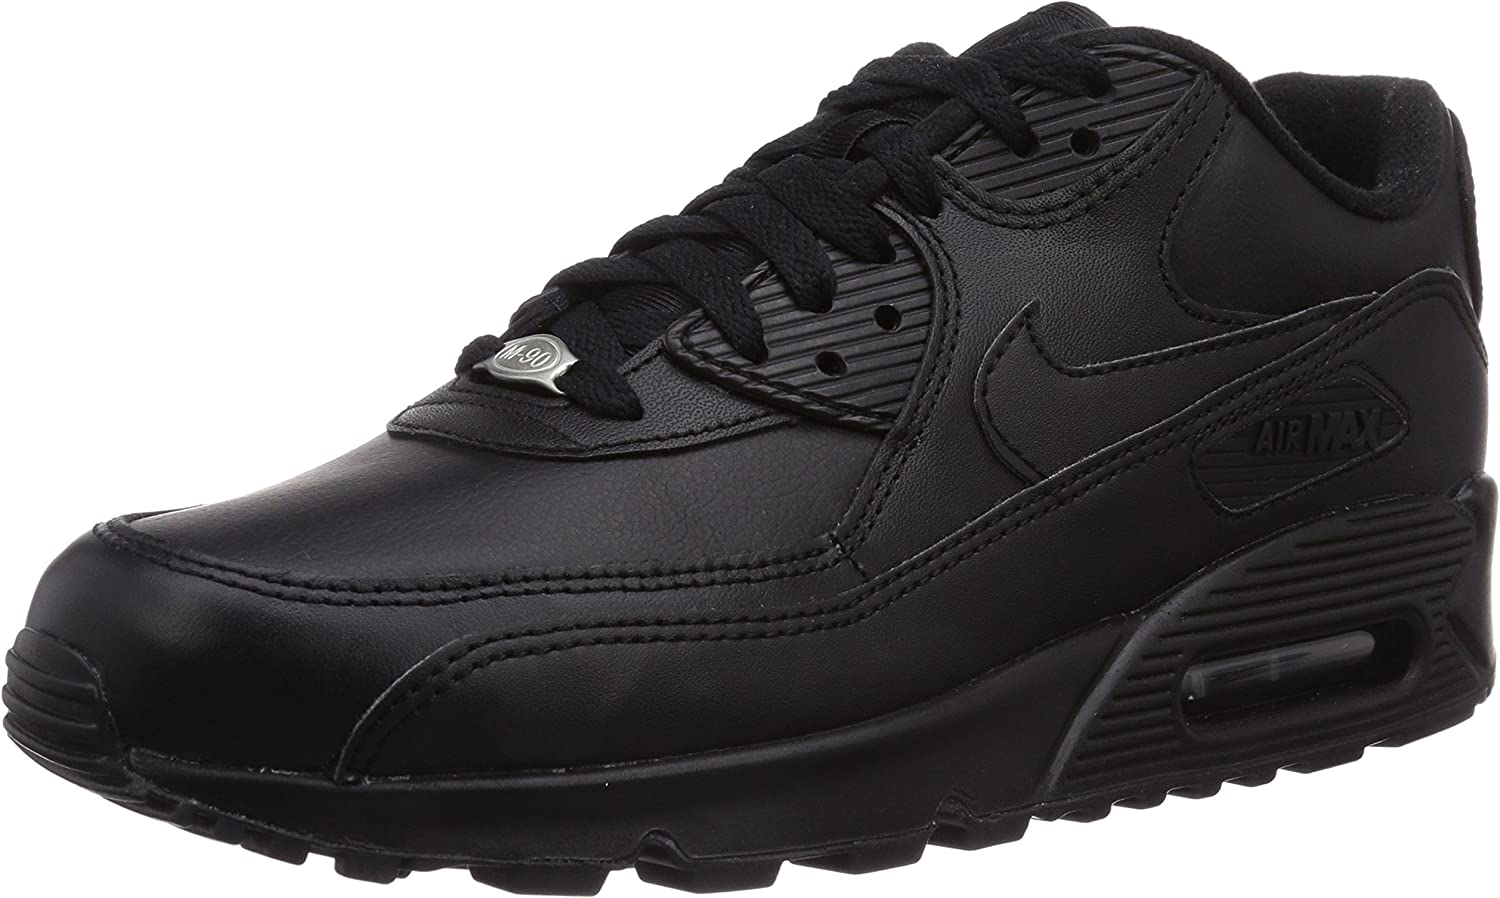 Nike Mens Air Max 90 Leather Running shoes Black Black 302519-001 Size 12.5